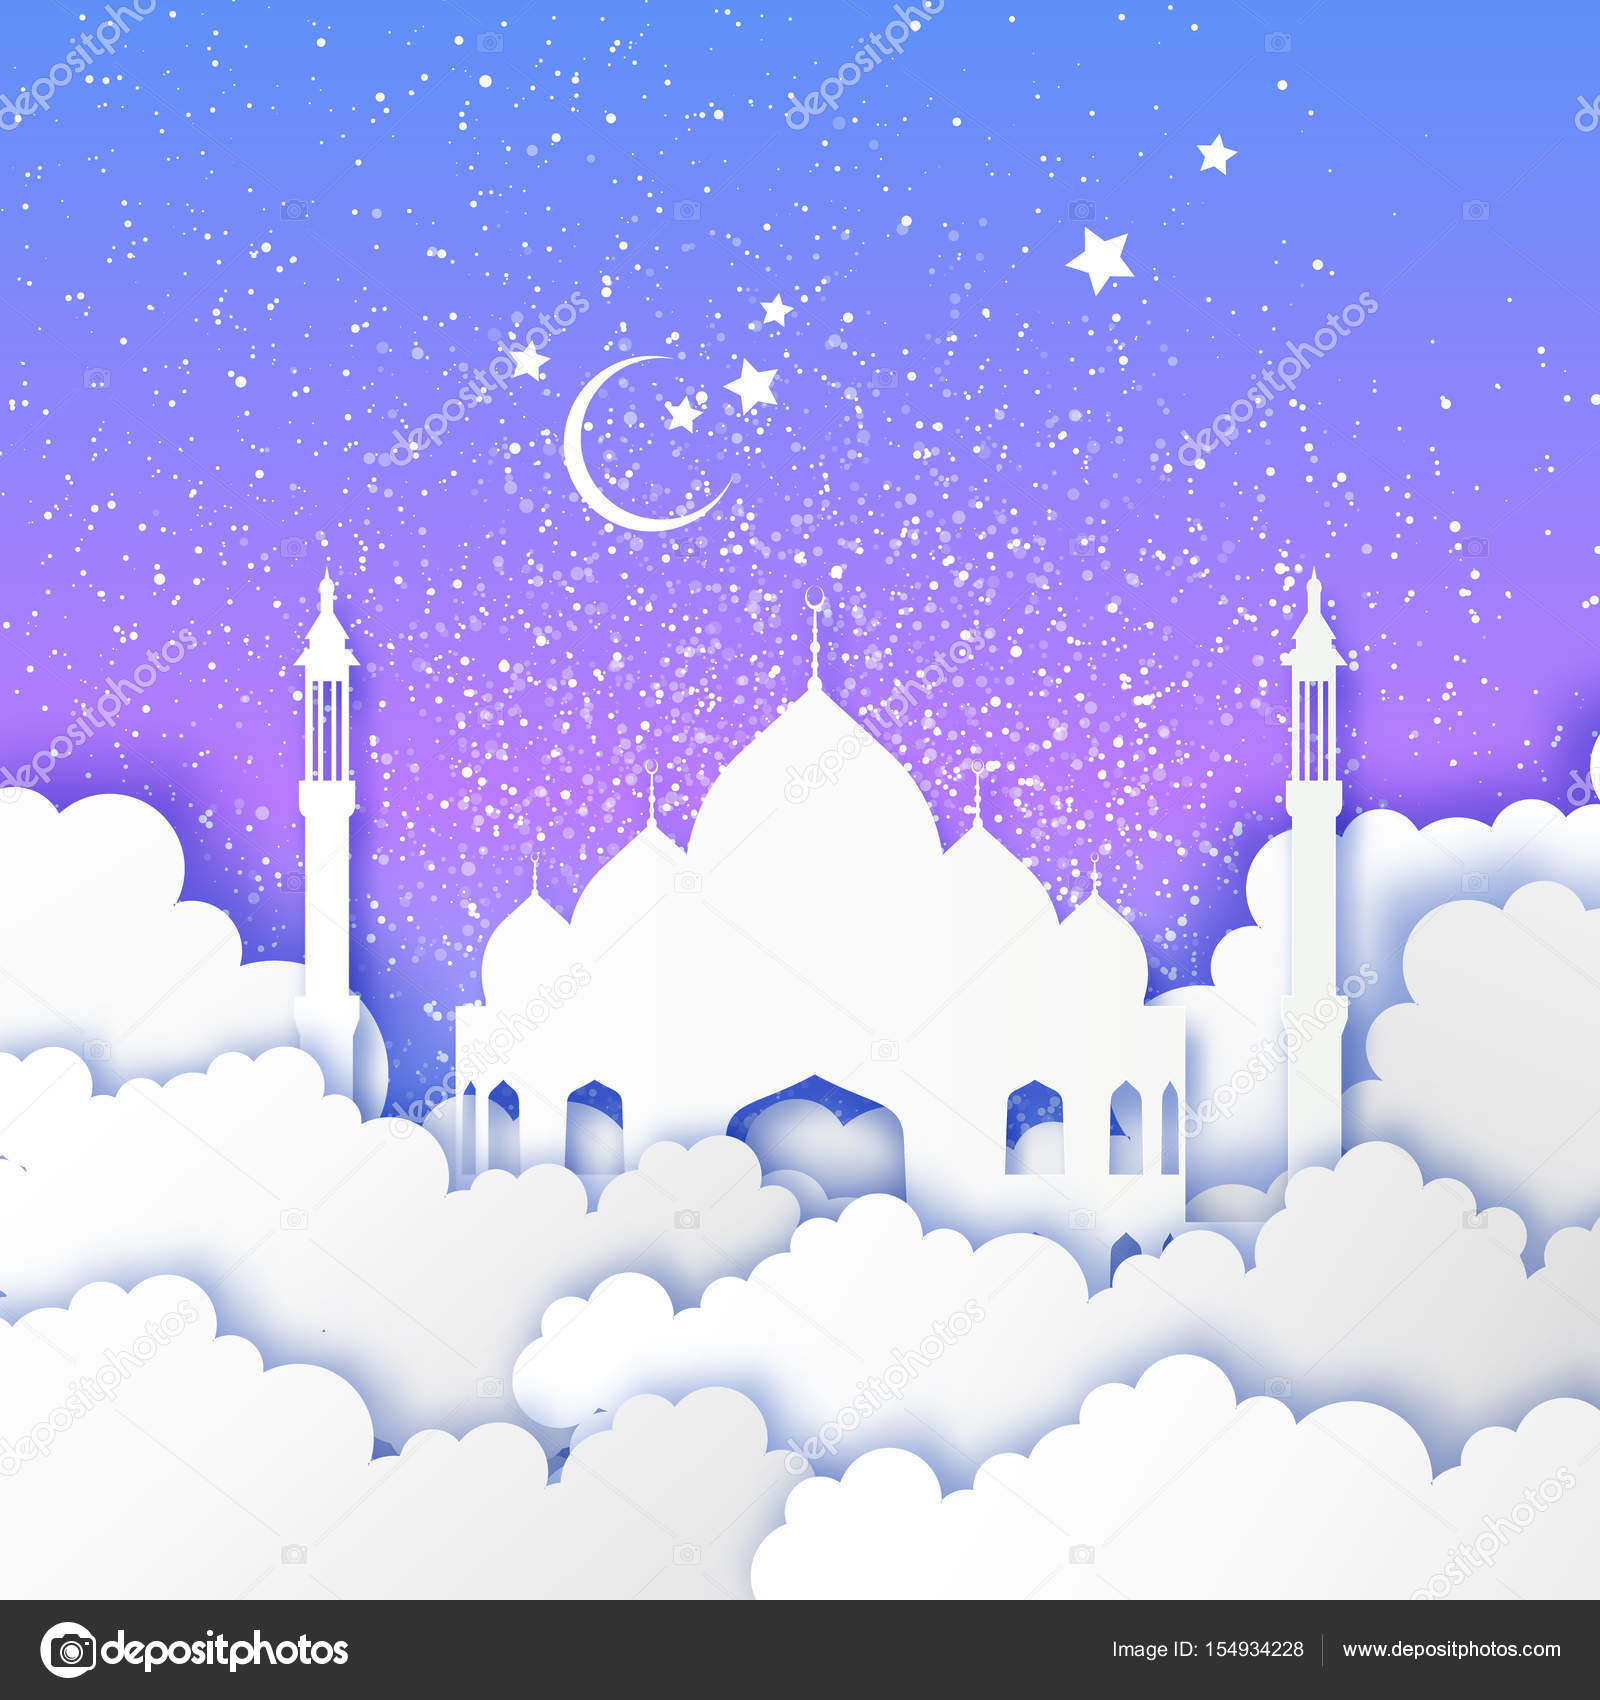 Ramadan kareem arabic mosque in paper cut style stars clouds arabic mosque in paper cut style stars clouds crescent moon holy month of muslim symbol of islam night sky origami greeting card blue background kristyandbryce Image collections